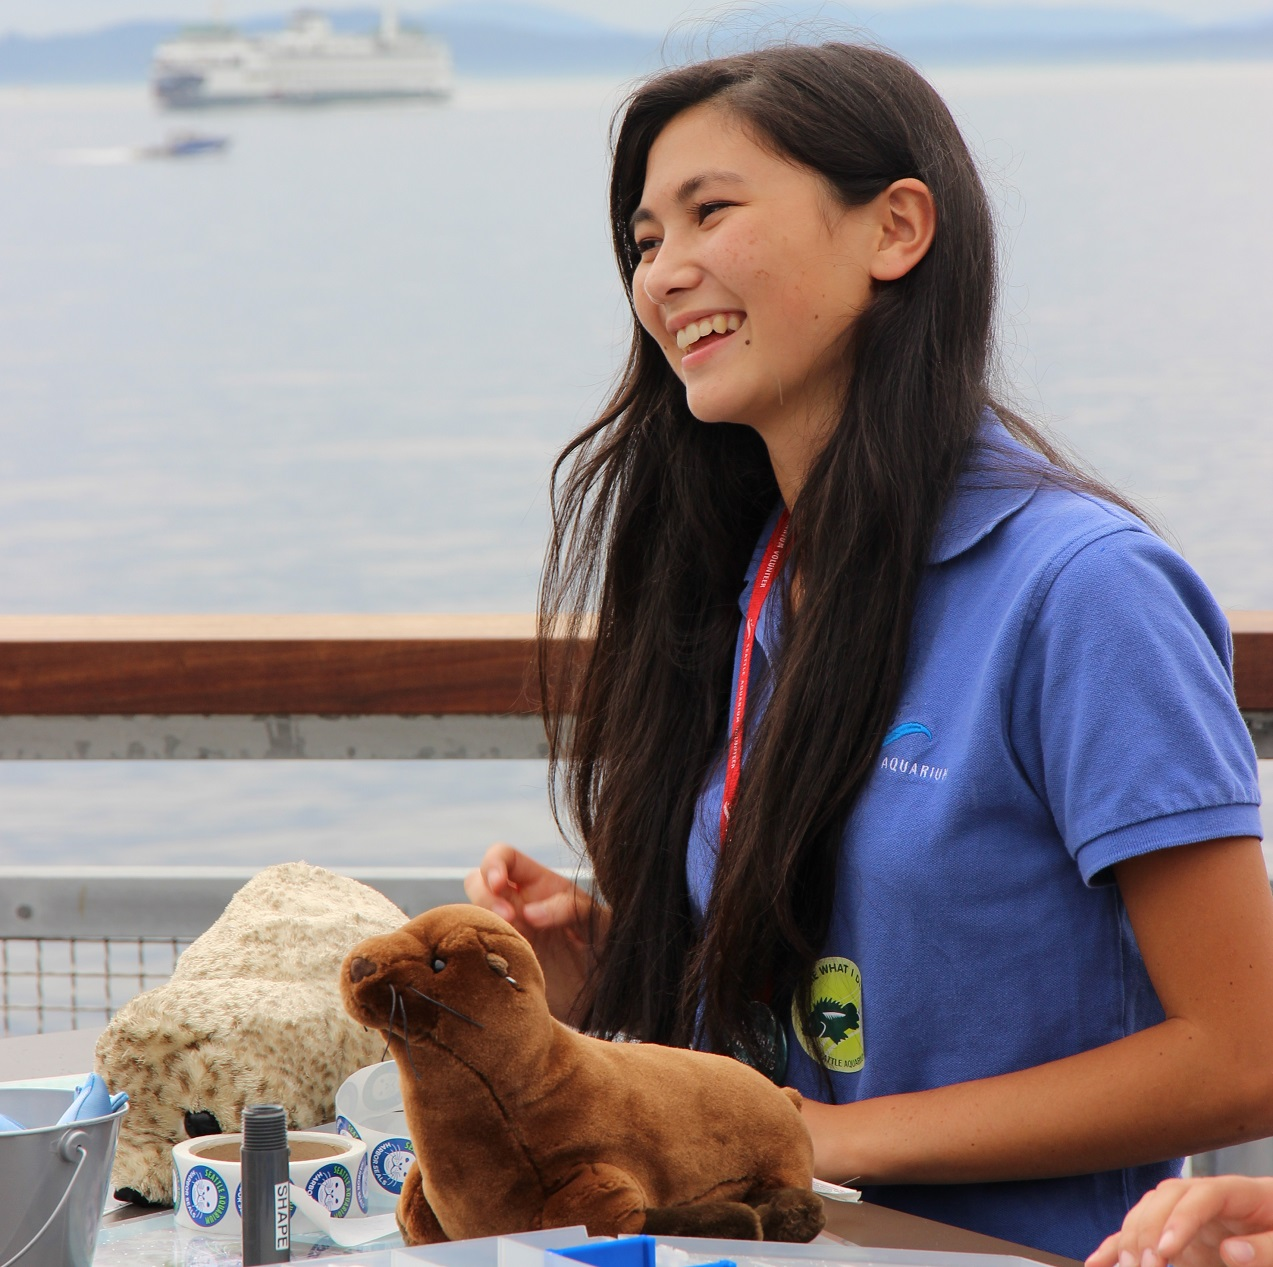 Seattle Aquarium volunteer